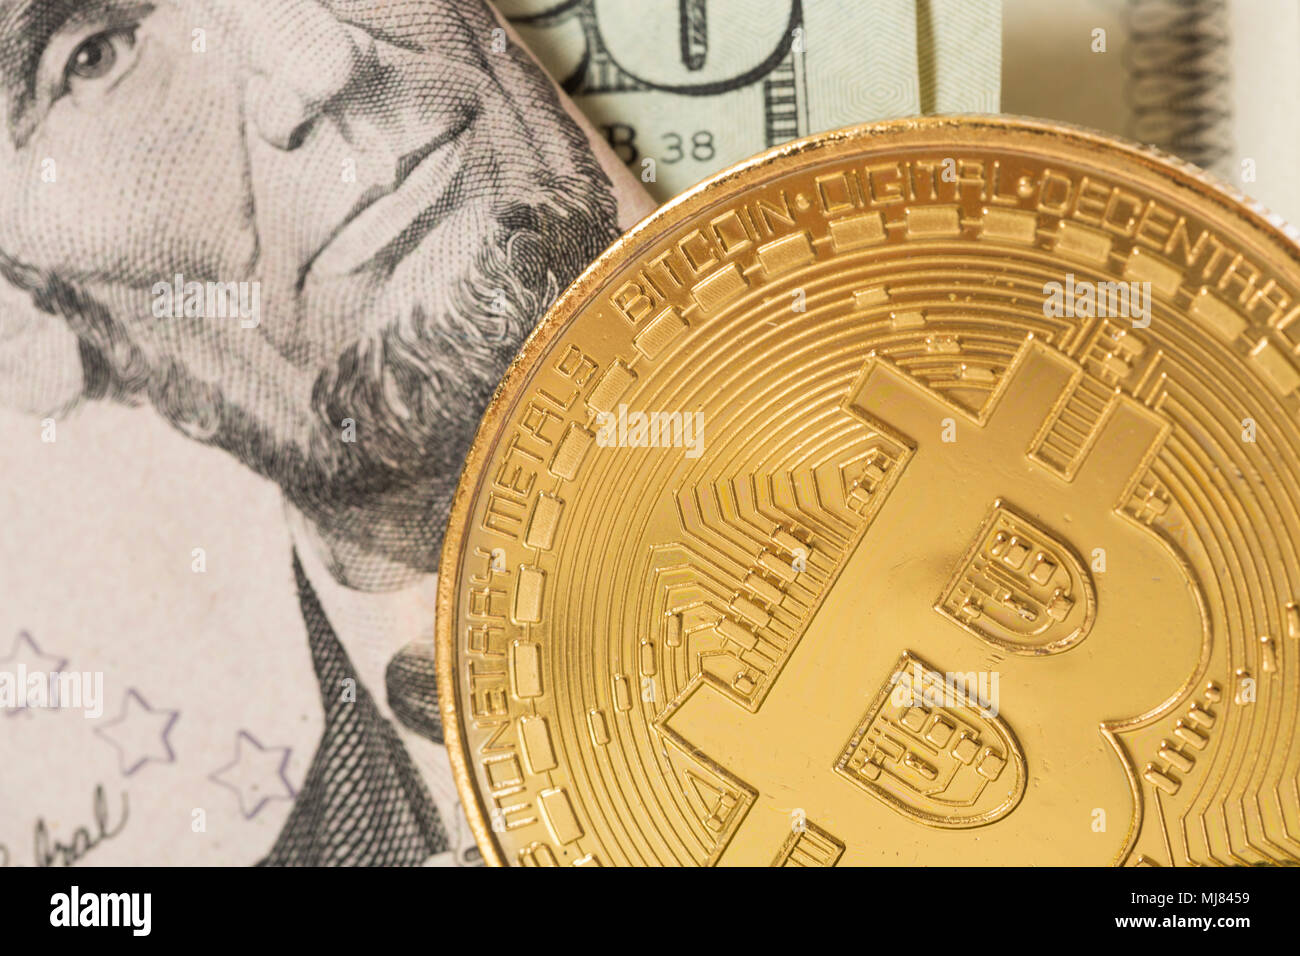 A bitcoin with paper currency. - Stock Image